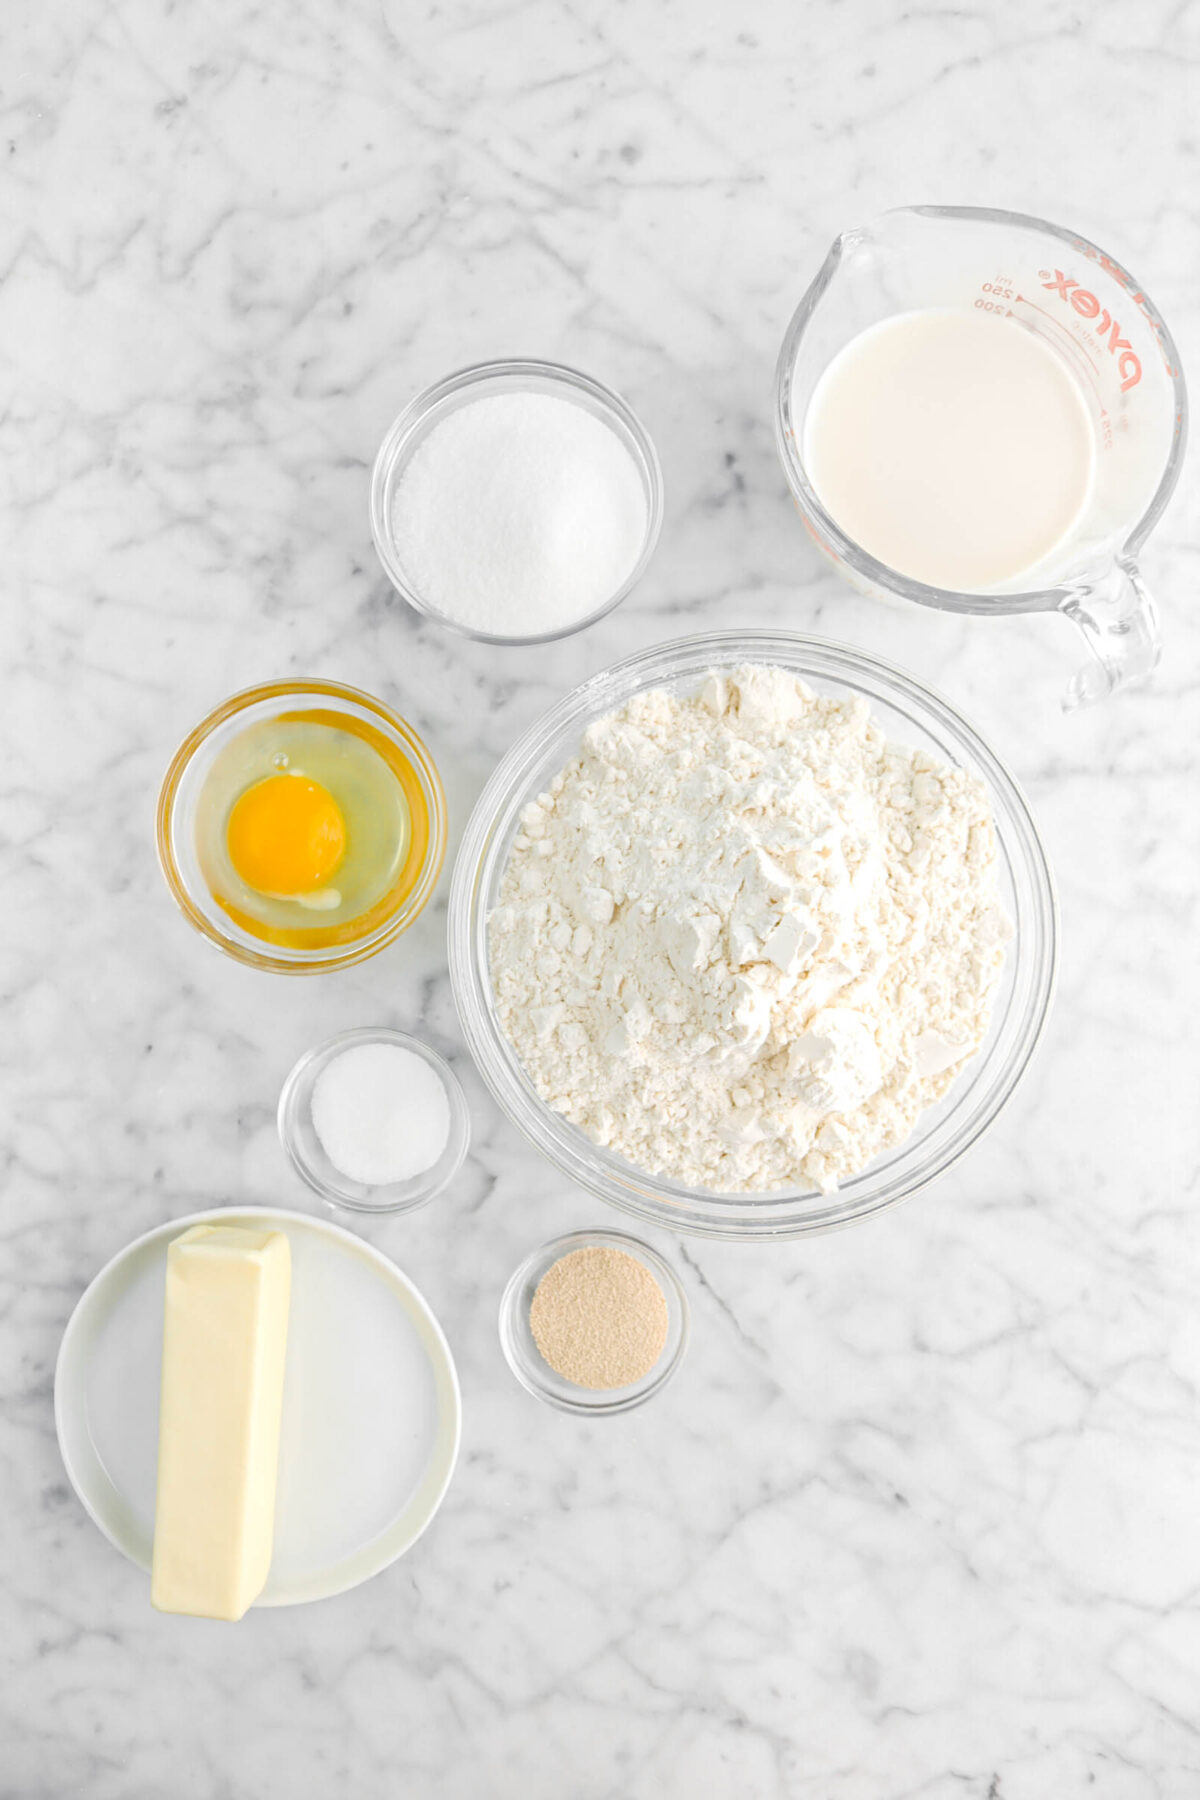 milk, sugar, egg, flour, salt, yeast, and butter on marble counter